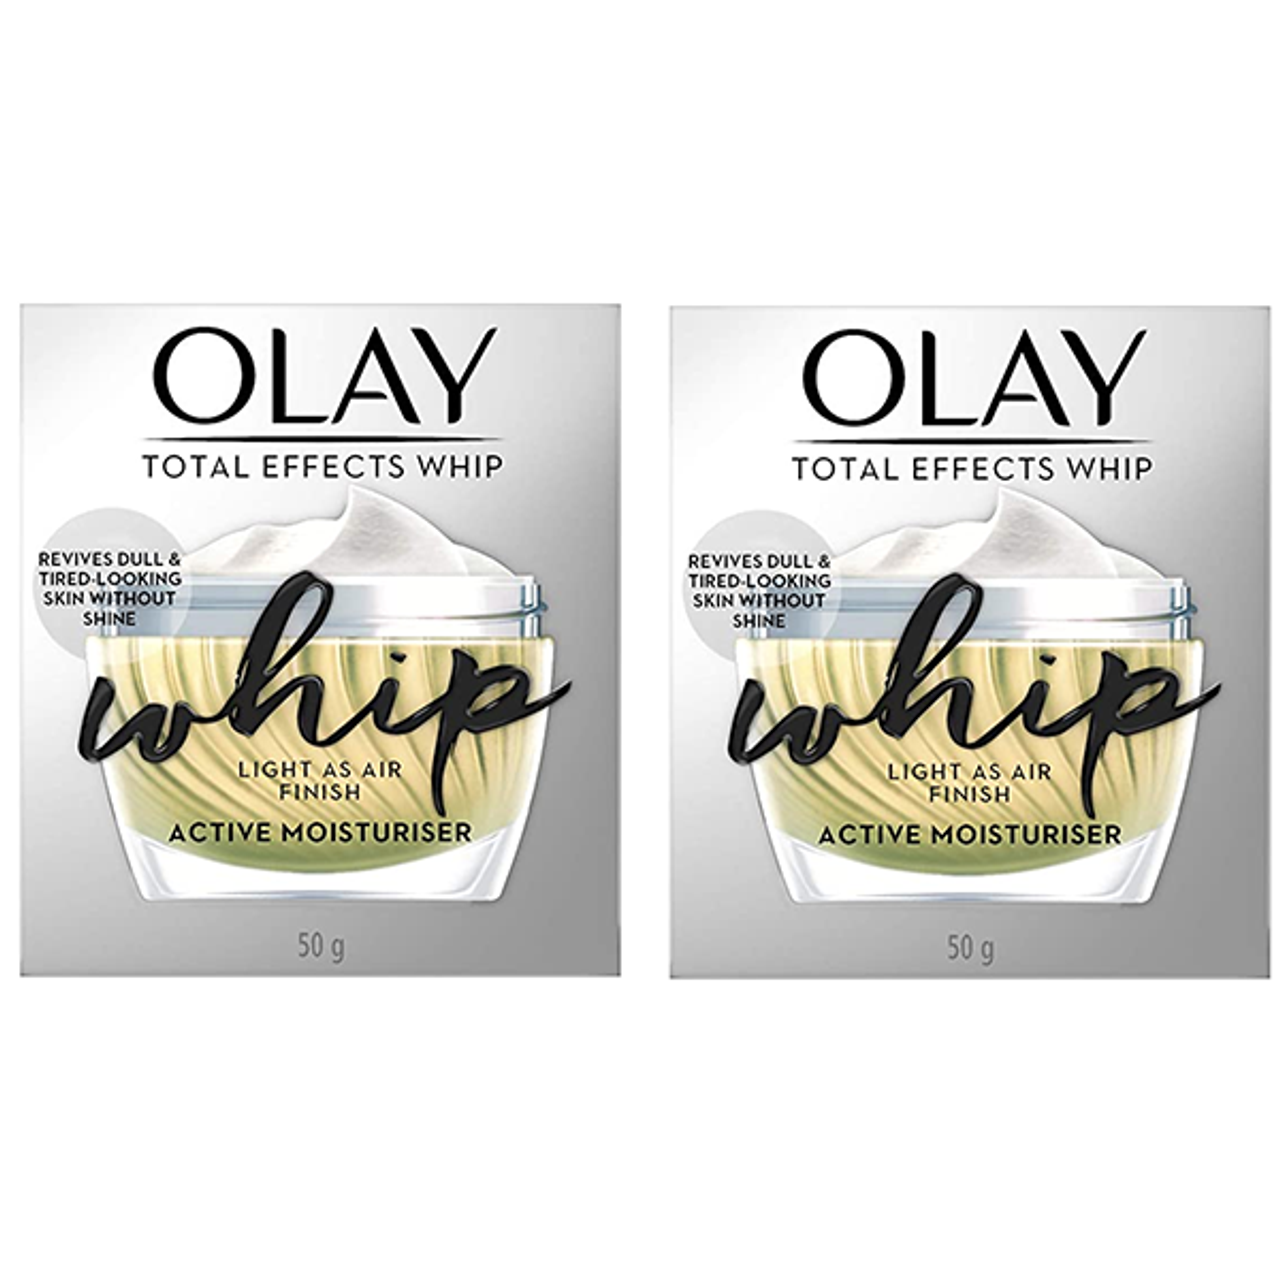 Olay Total Effects Whip Active Moisturizer, 1.7 oz. (2-Pack) $28.99 (63% OFF)